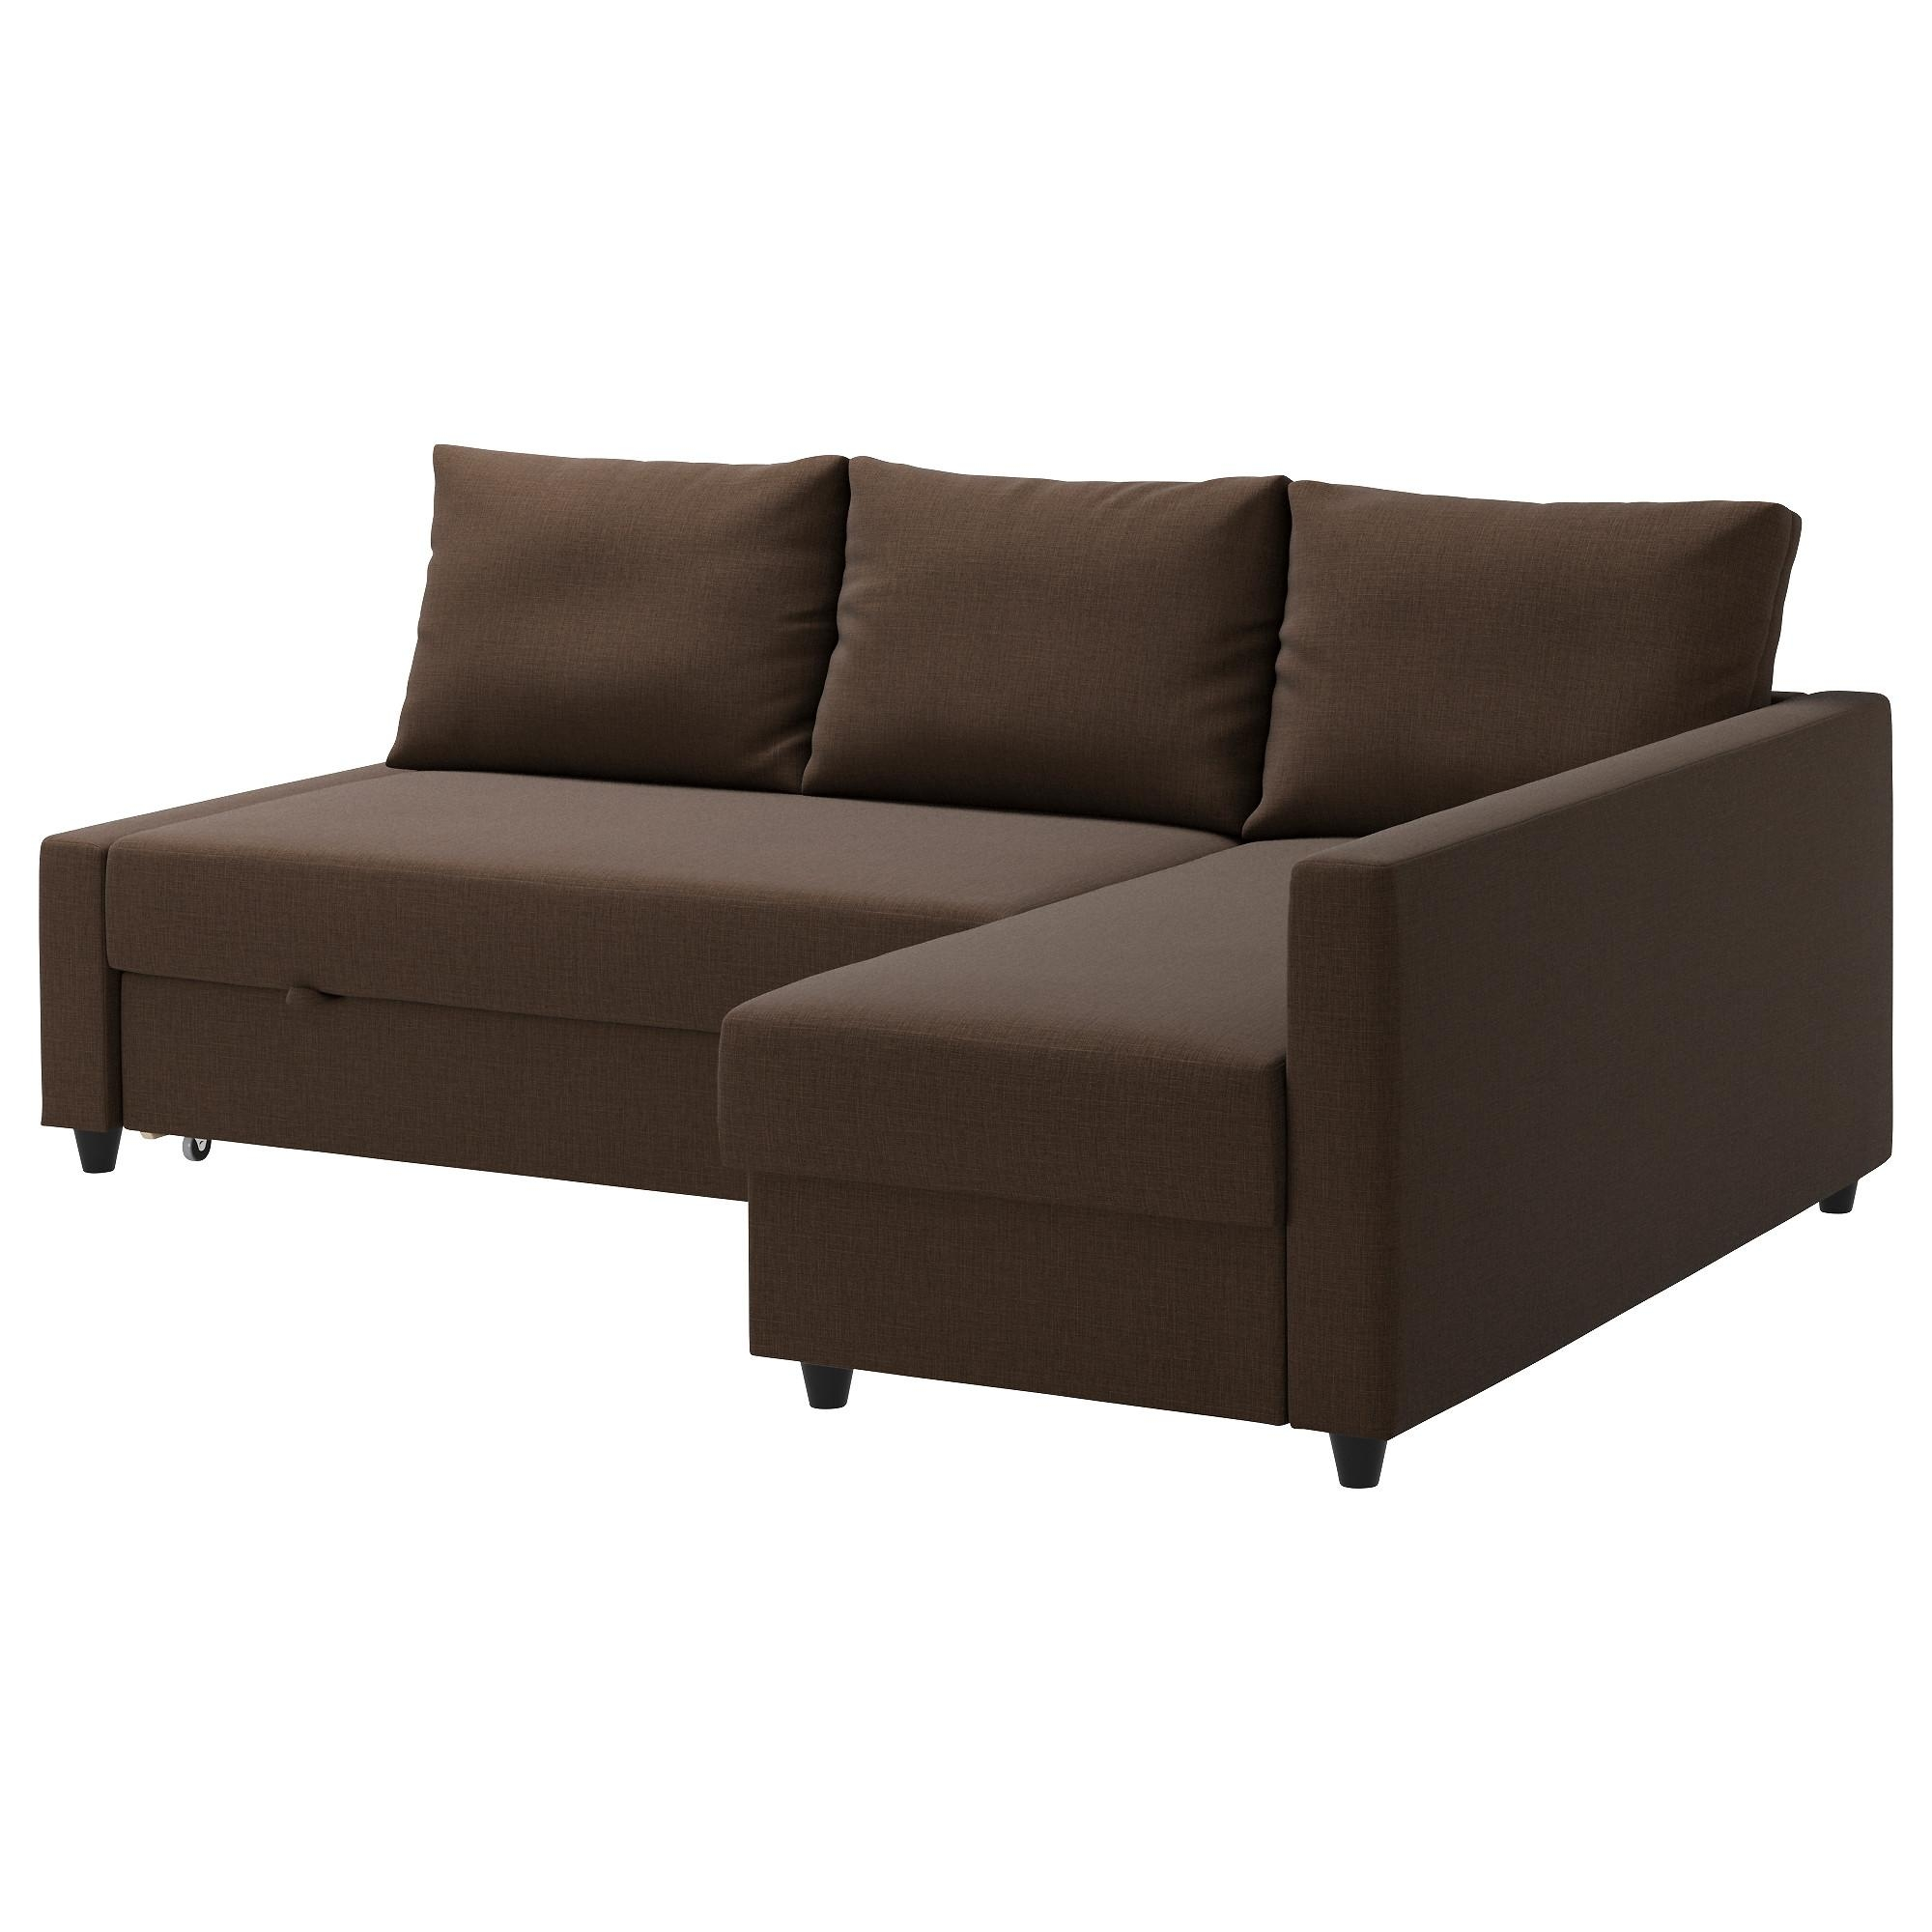 Friheten Corner Sofa Bed With Storage Skiftebo Brown – Ikea With Regard To Storage Sofas Ikea (View 6 of 20)